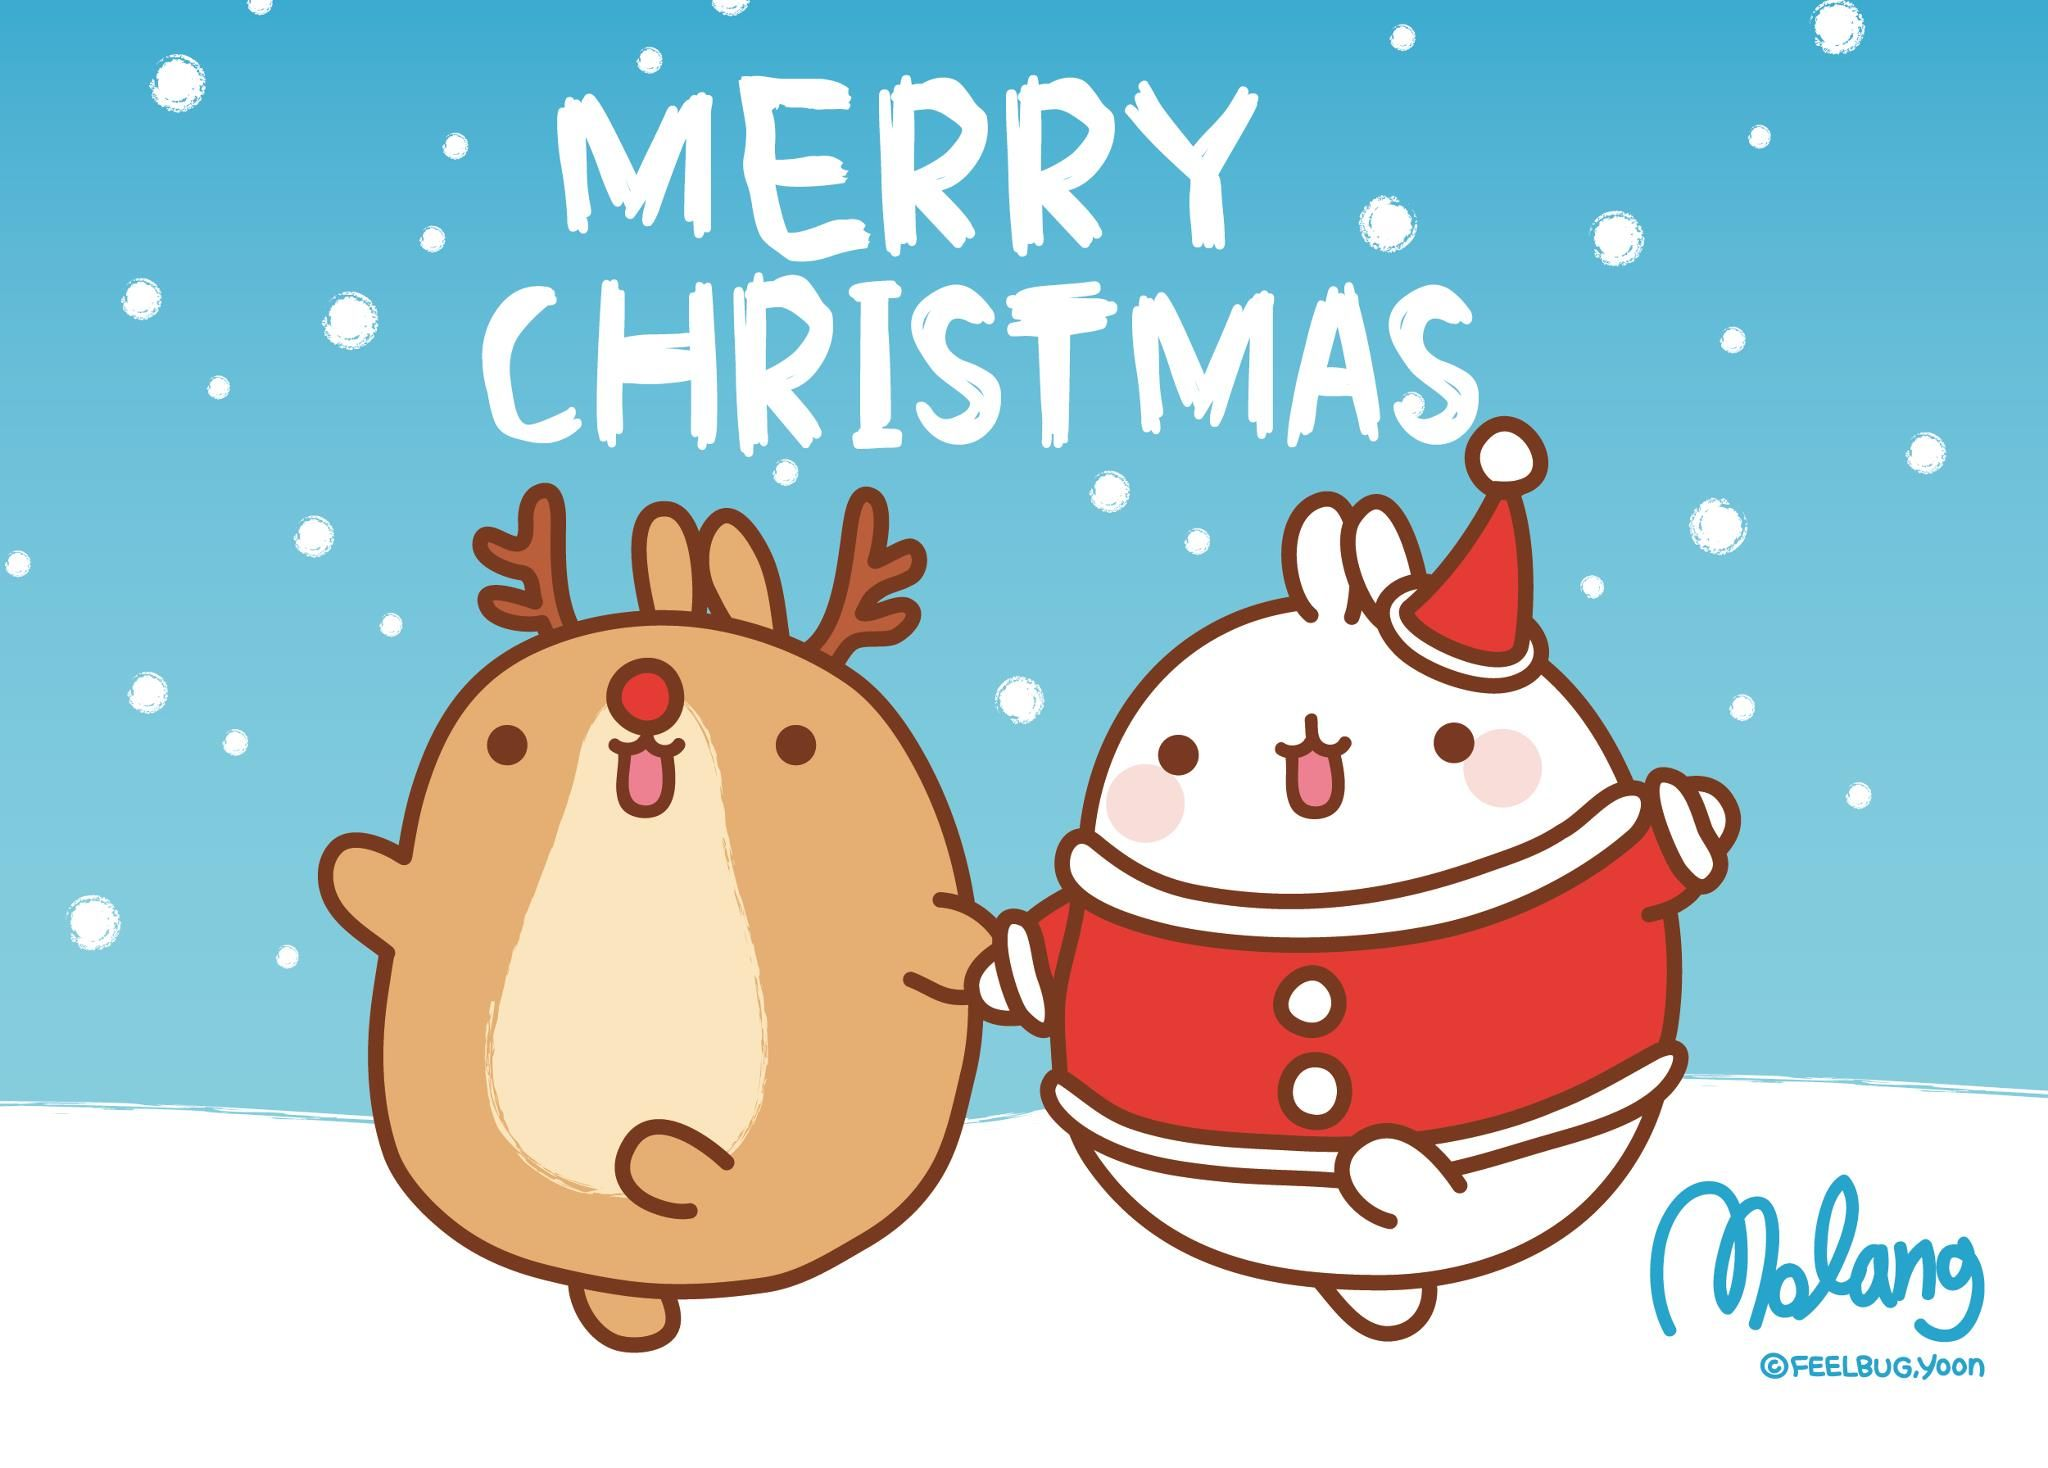 Merry Christmas Yay Christmas Break Cute Christmas Wallpaper Christmas Desktop Wallpaper Y Cute Christmas Backgrounds